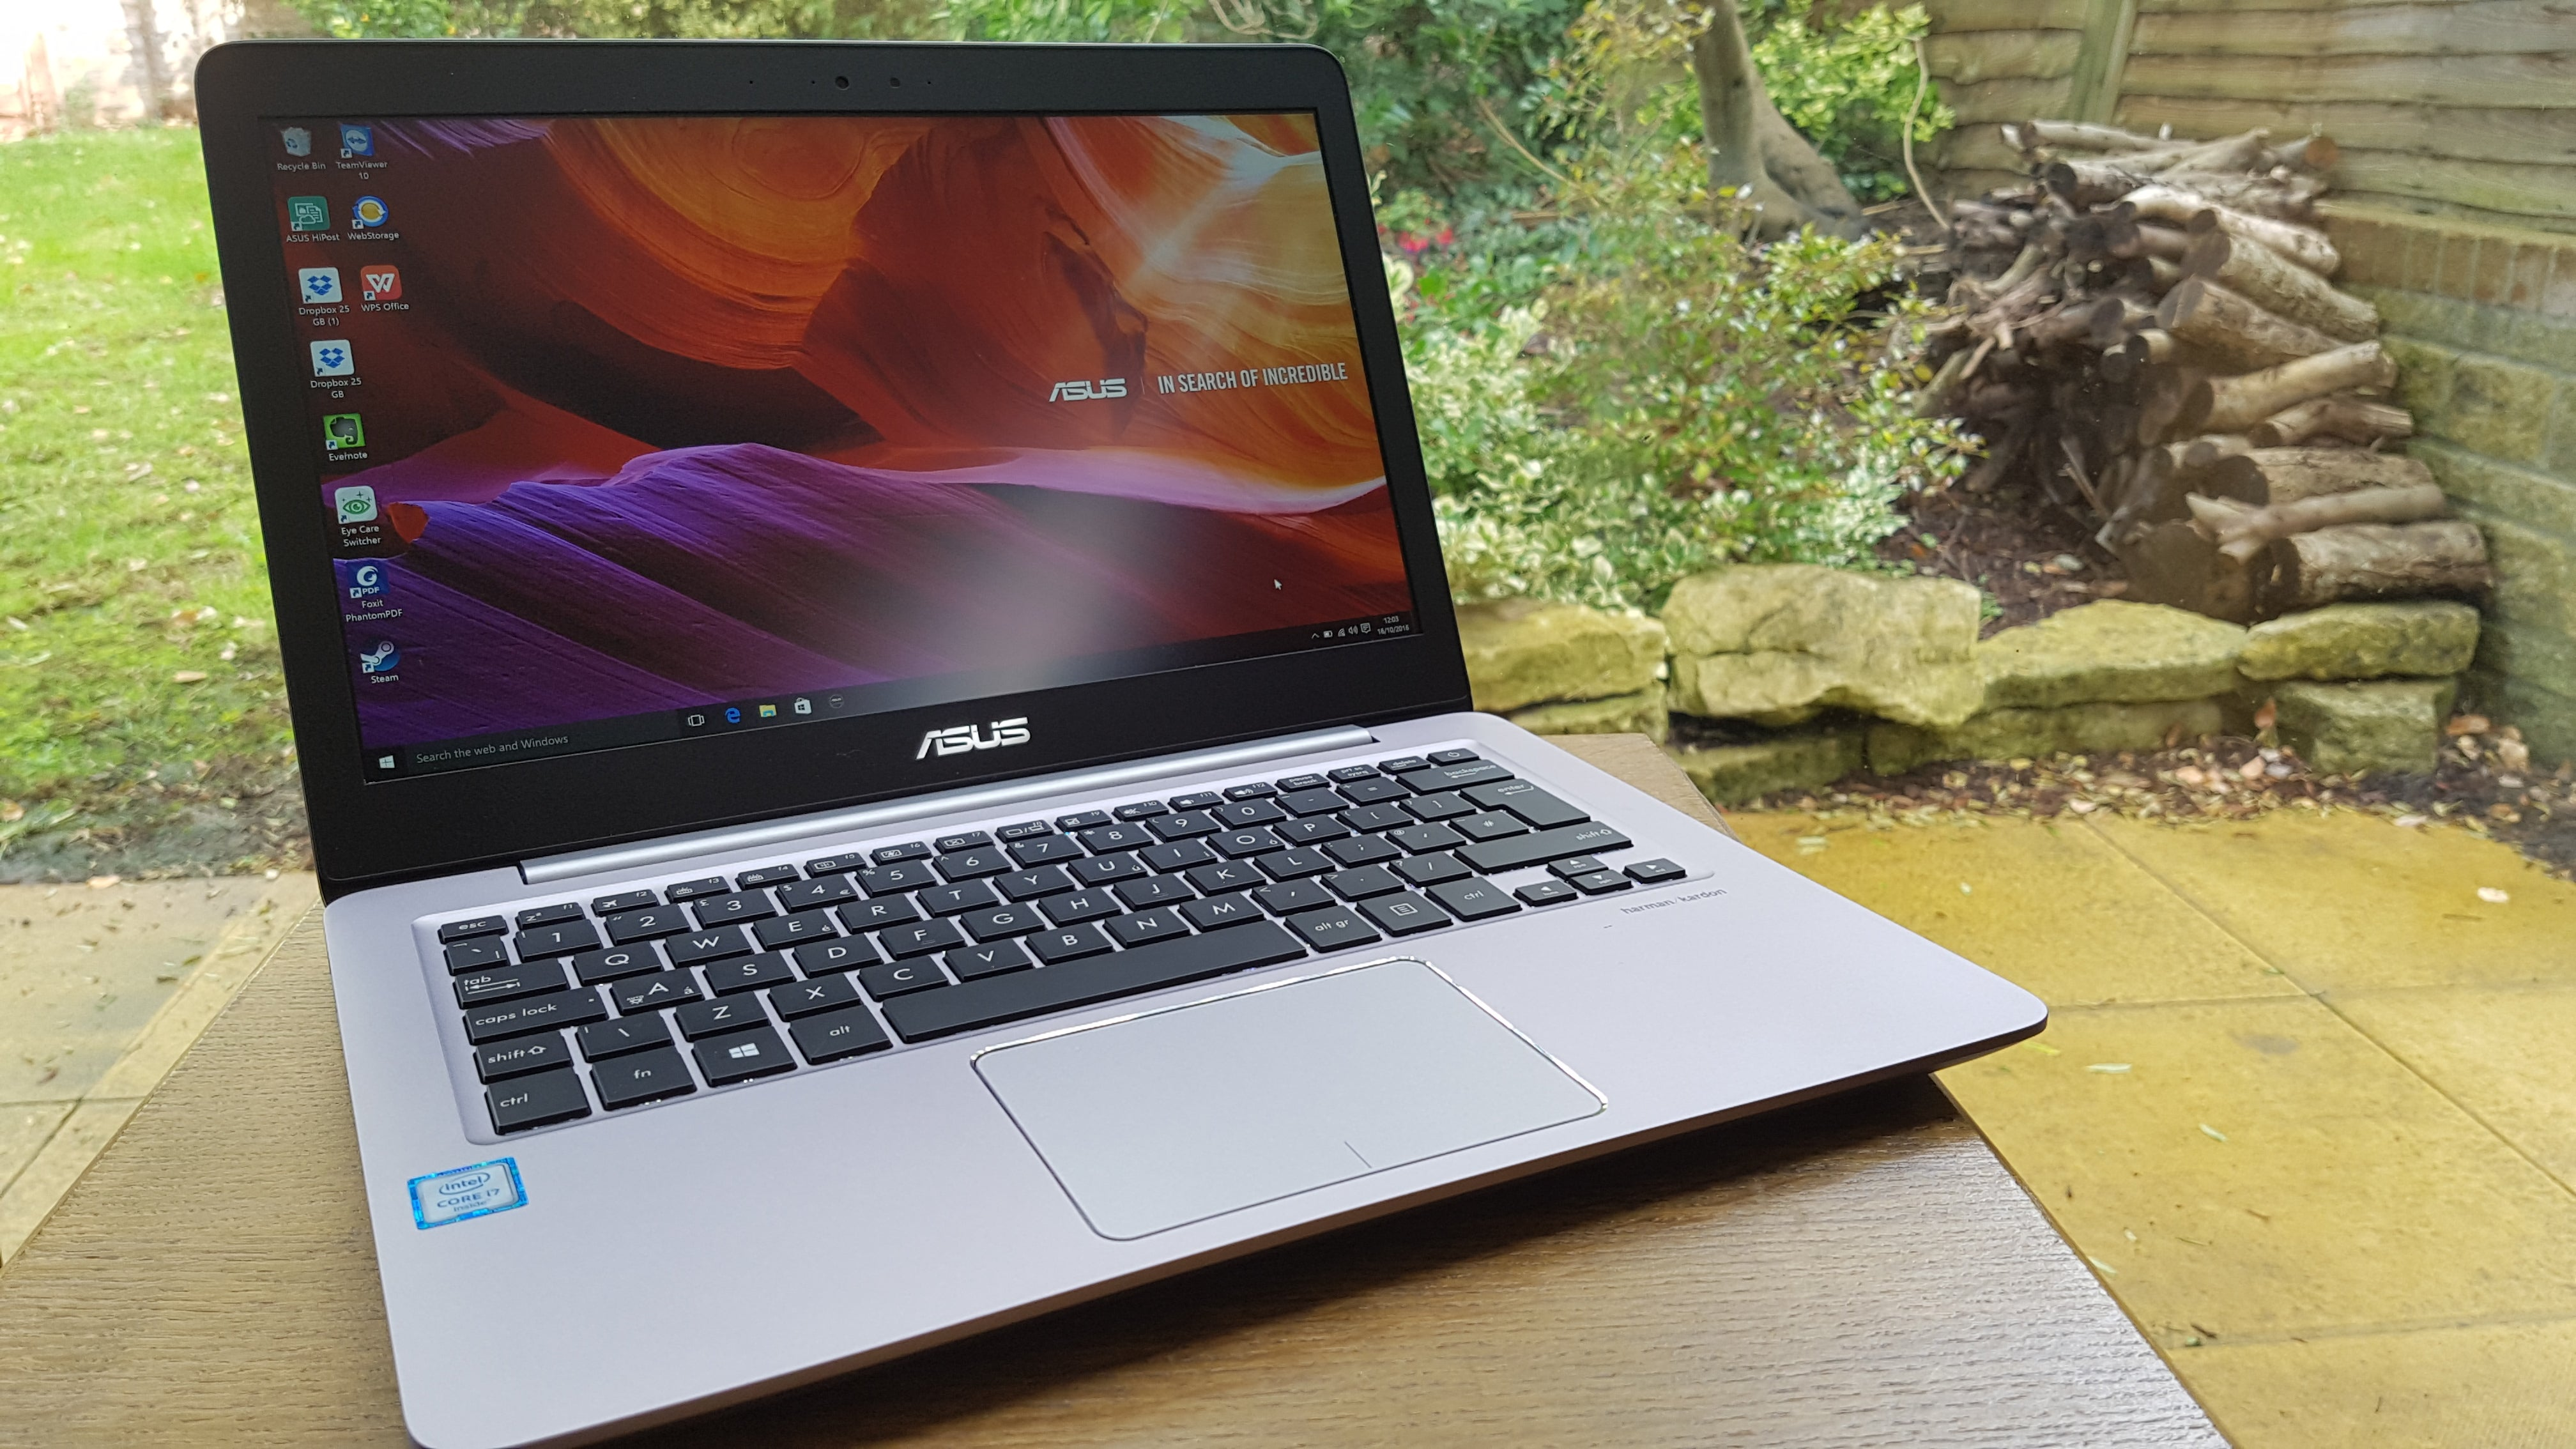 Asus Zenbook Ux310ua Review Trusted Reviews